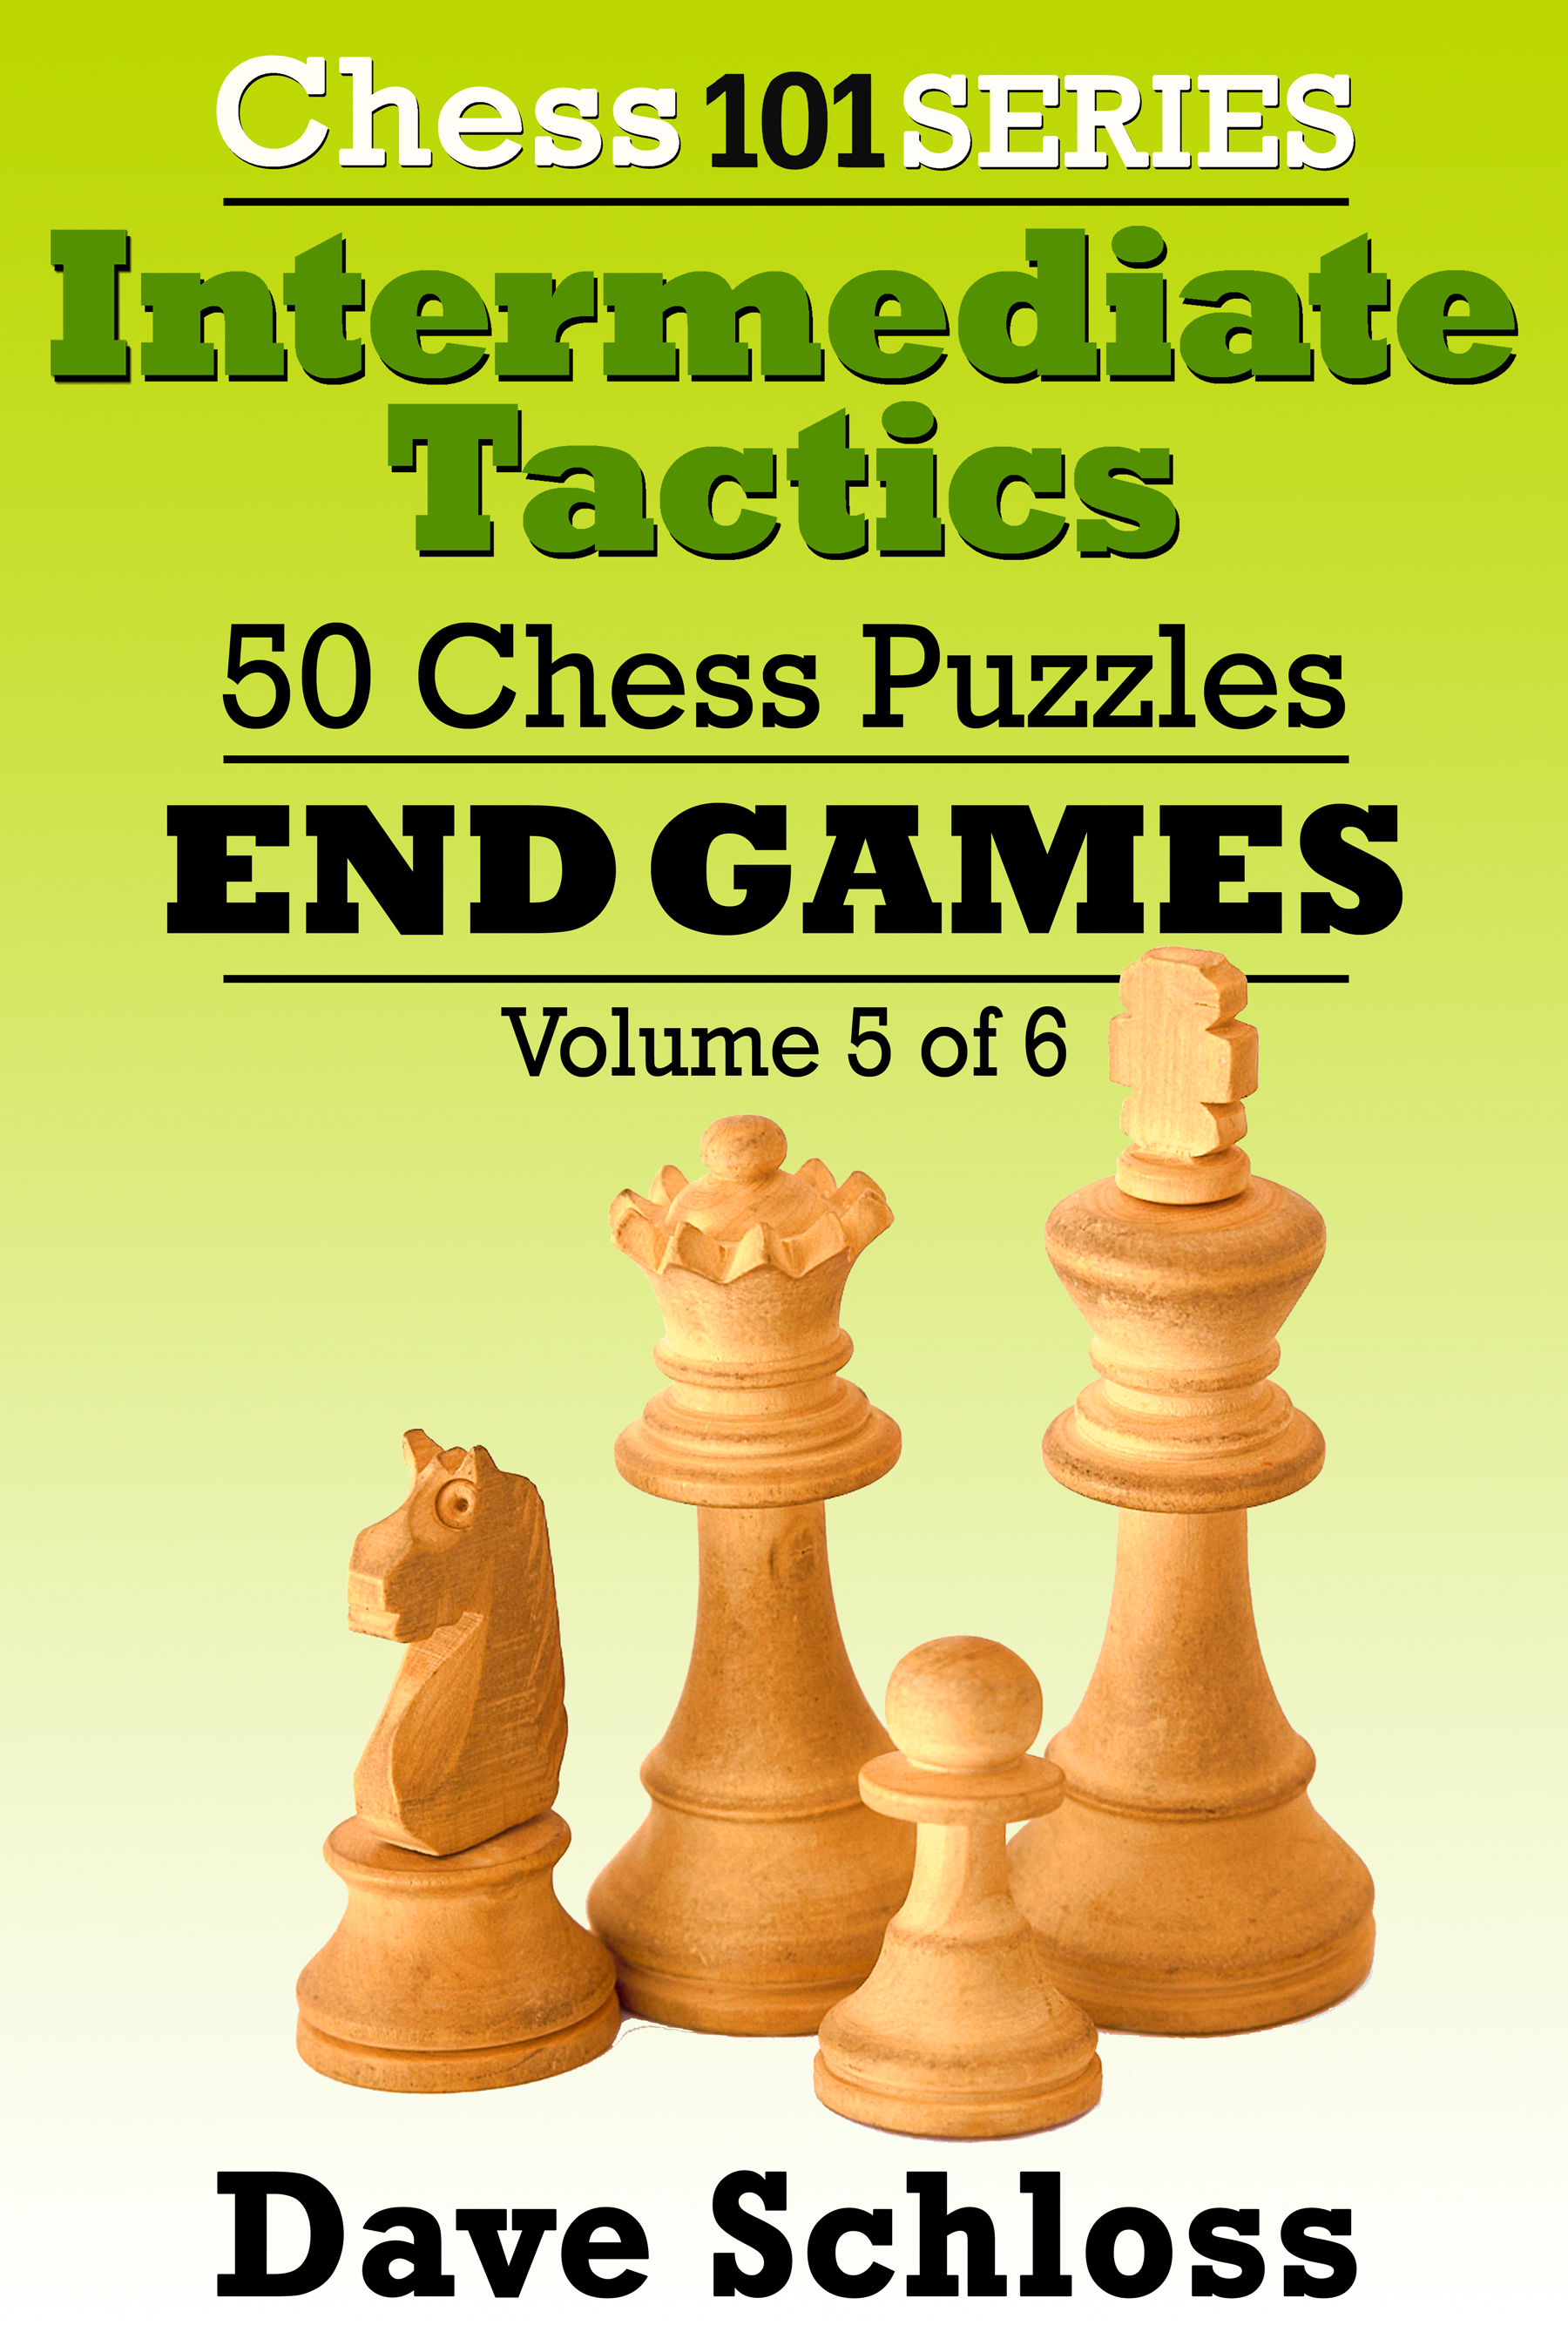 Chess 101 Intermediate Tactics Series, Volume 5 - End Games